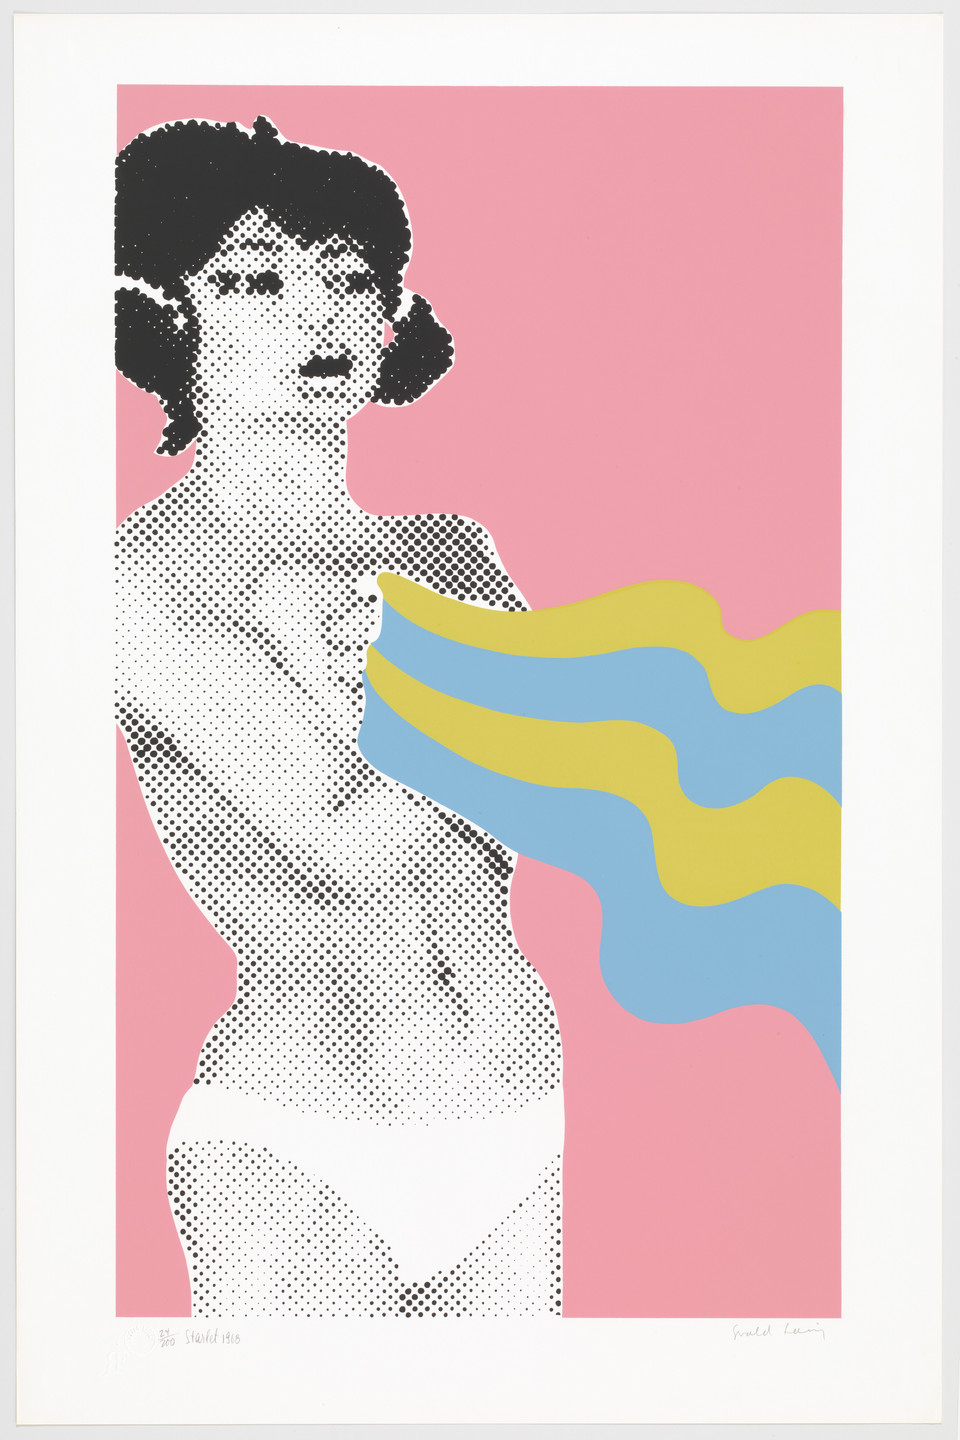 Gerald Laing. Starlet from Baby Baby Wild Things. 1968